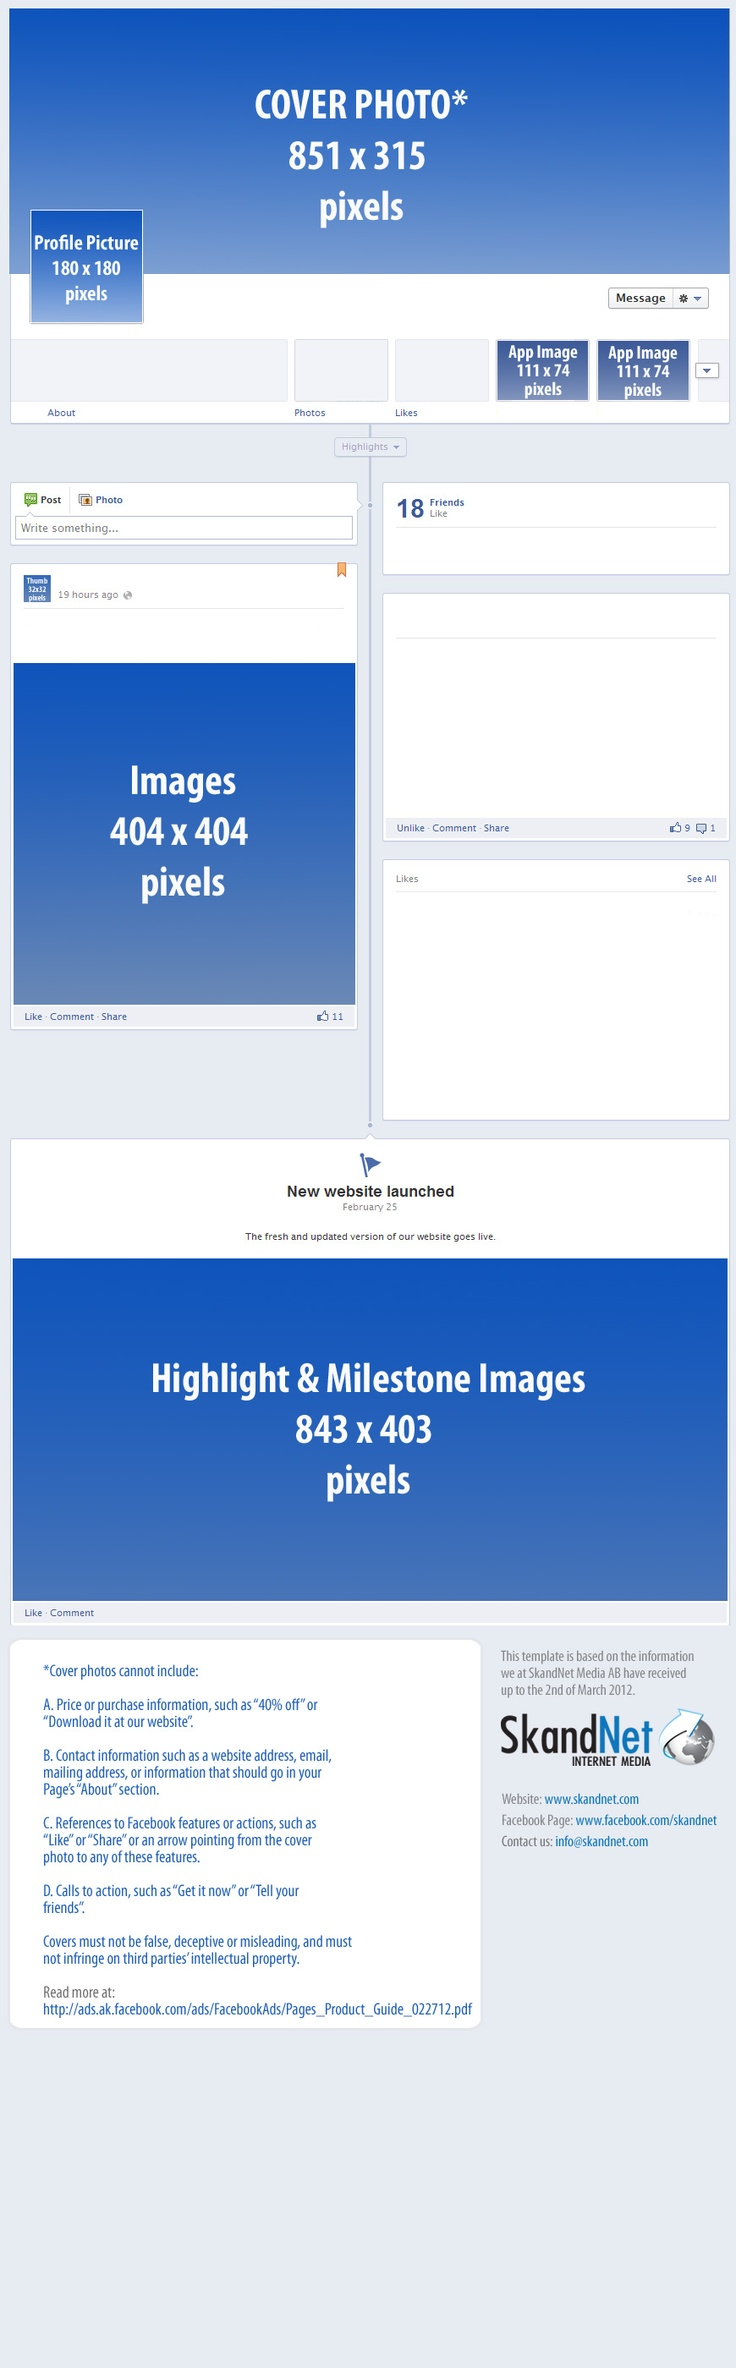 New Facebook Pages - Size recommendations for perfect images every time